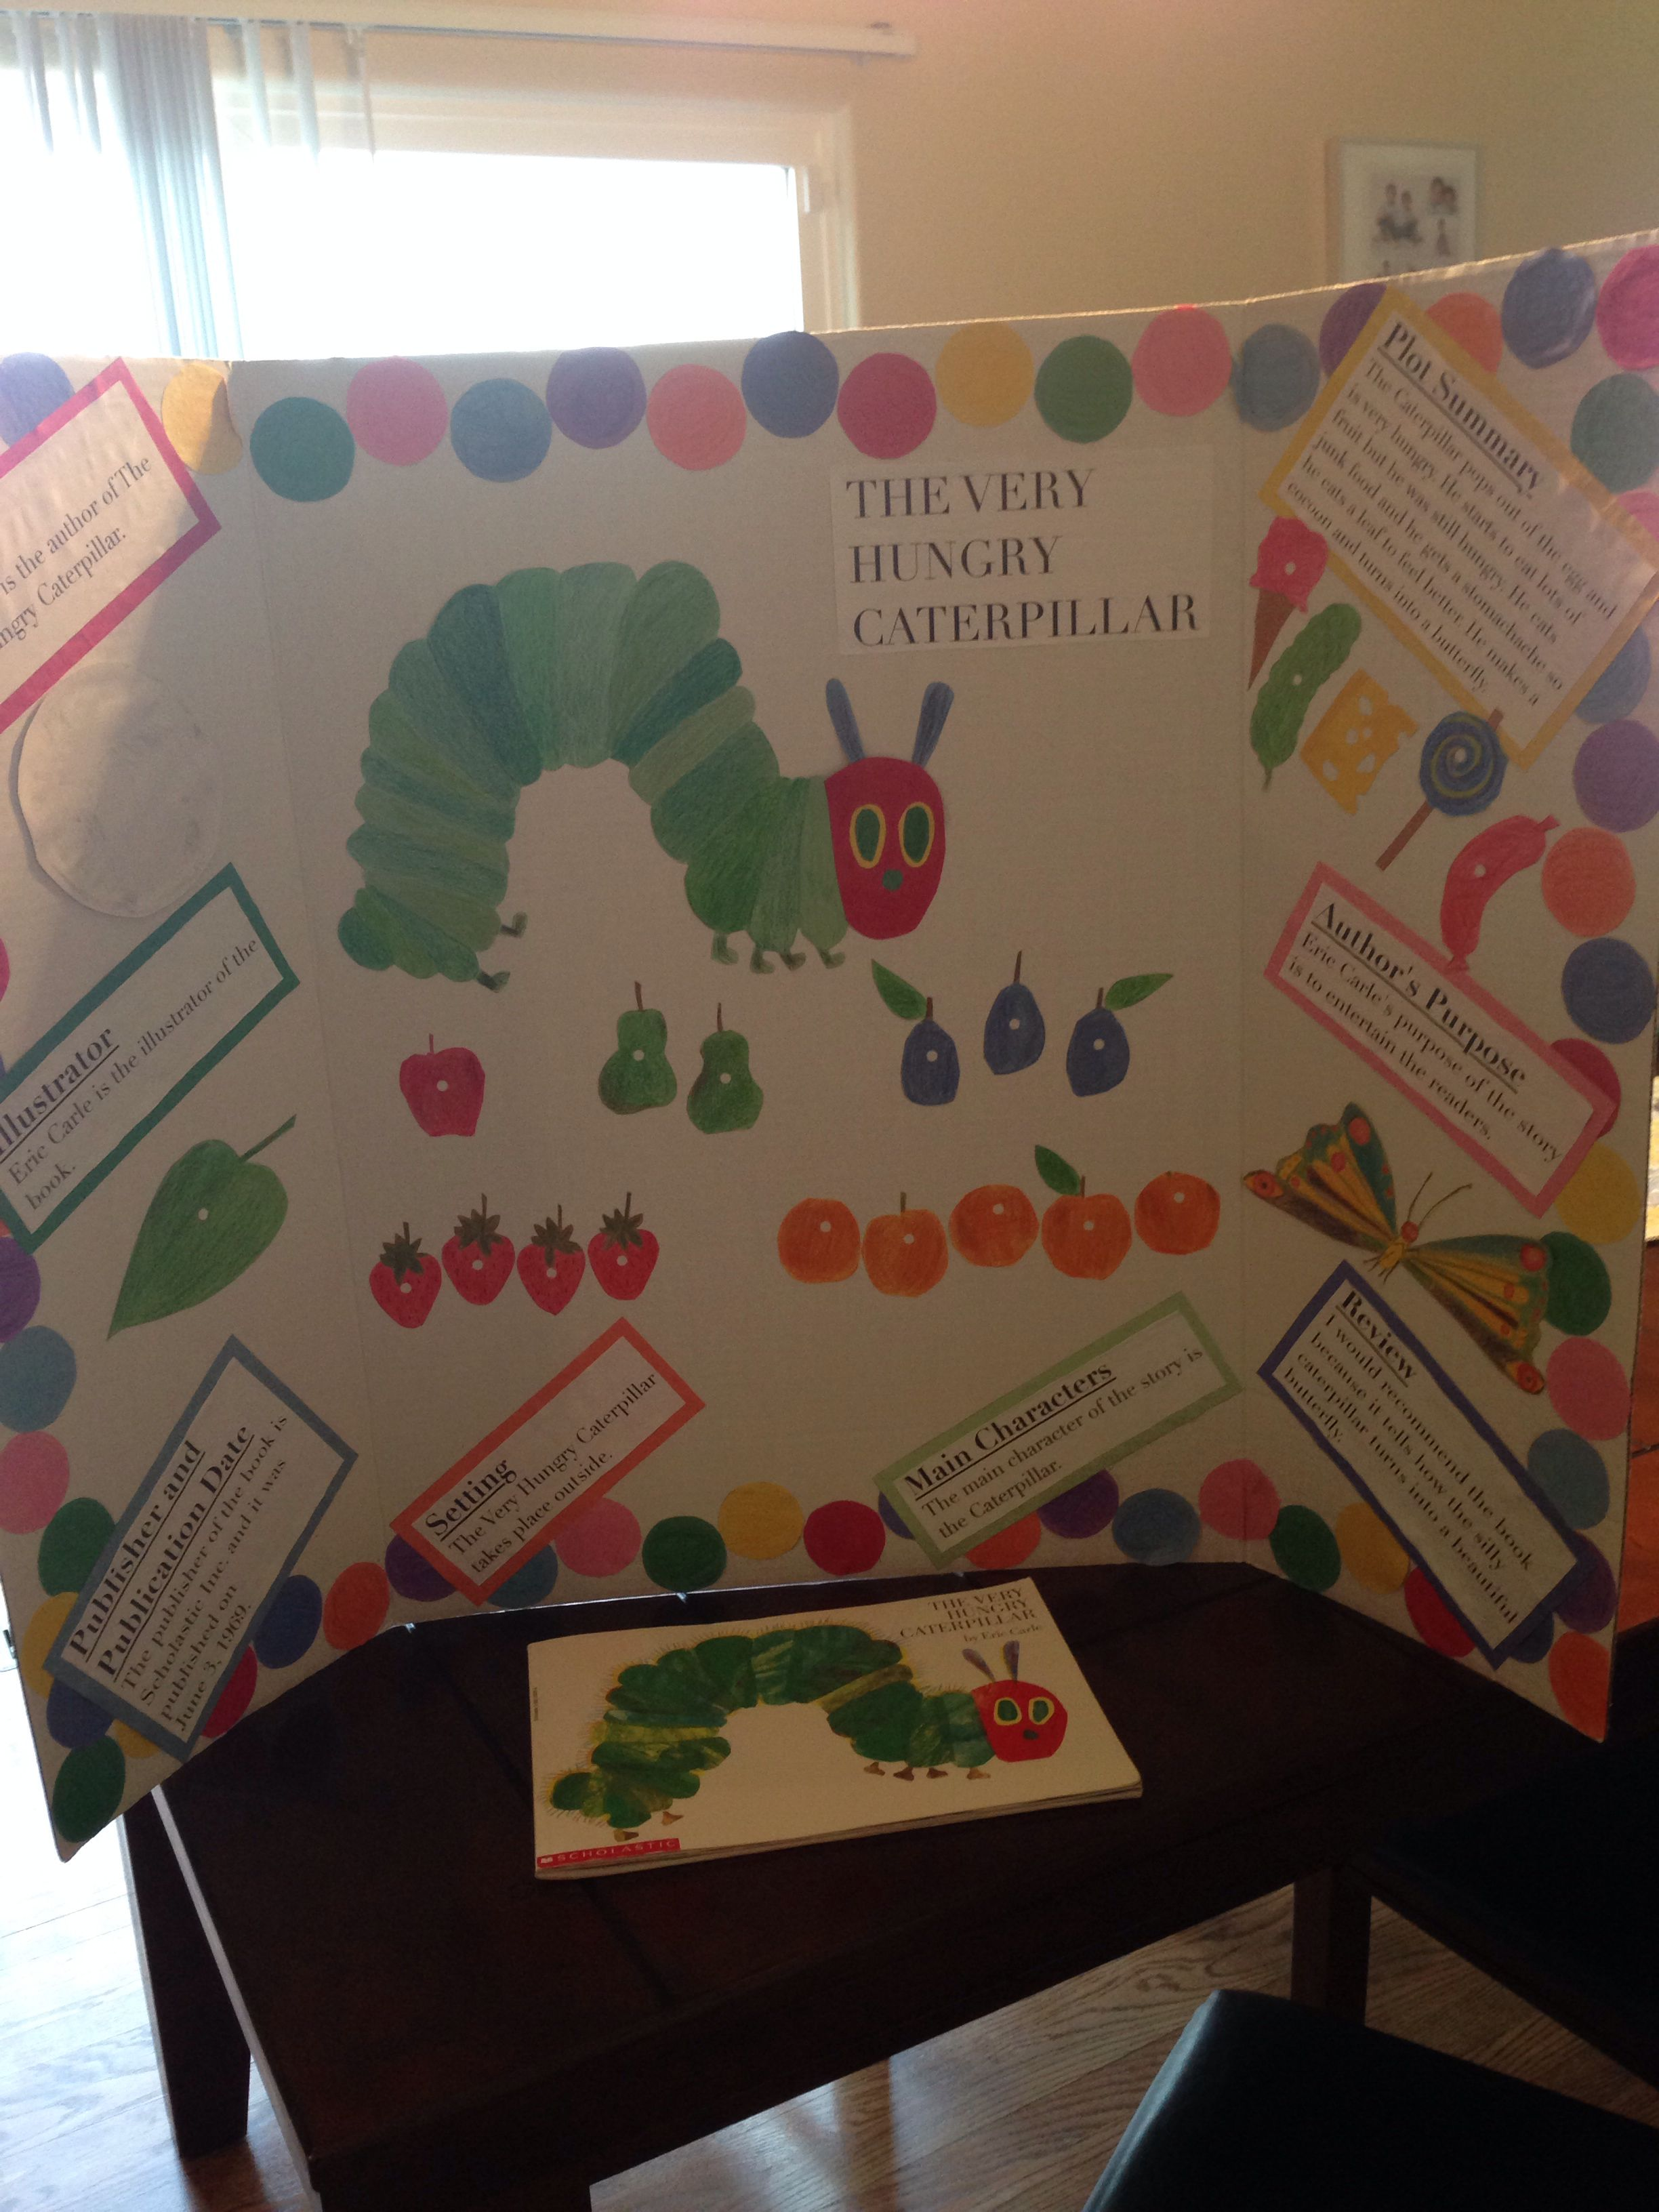 The Very Hungry Caterpillar Reading Fair Board